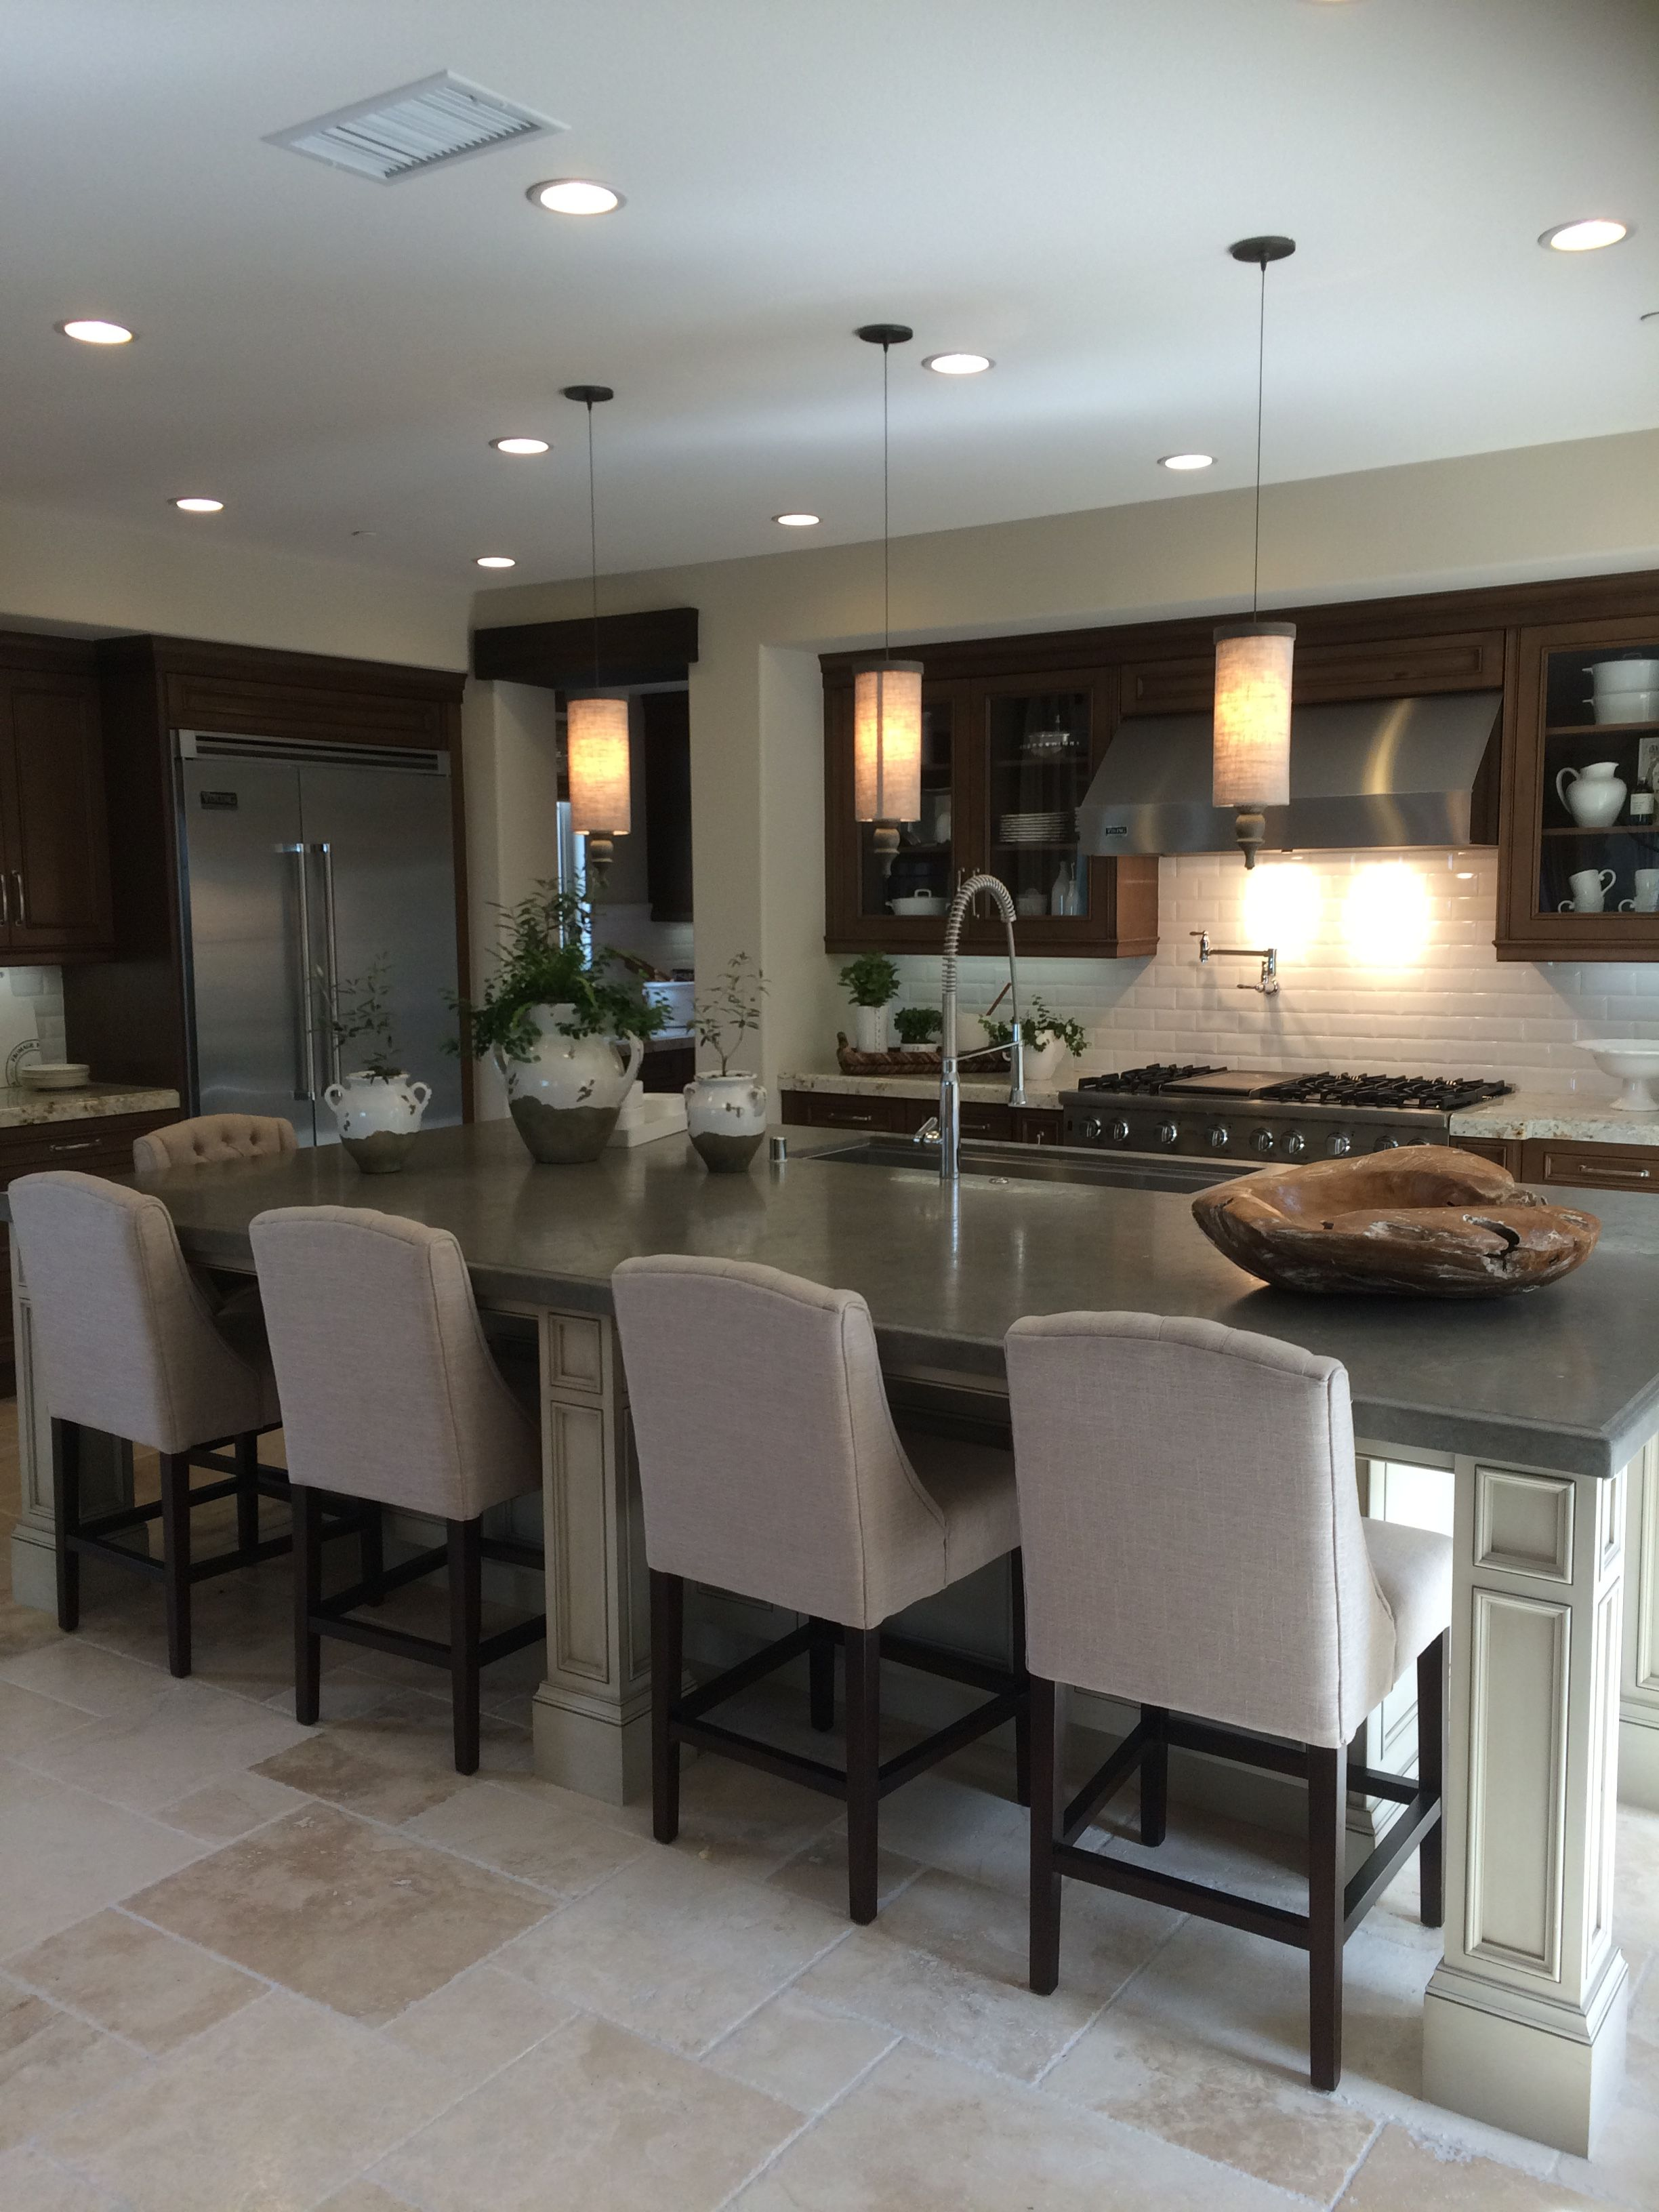 Best Amazing Kitchen With Images Kitchen Remodel Kitchen 400 x 300